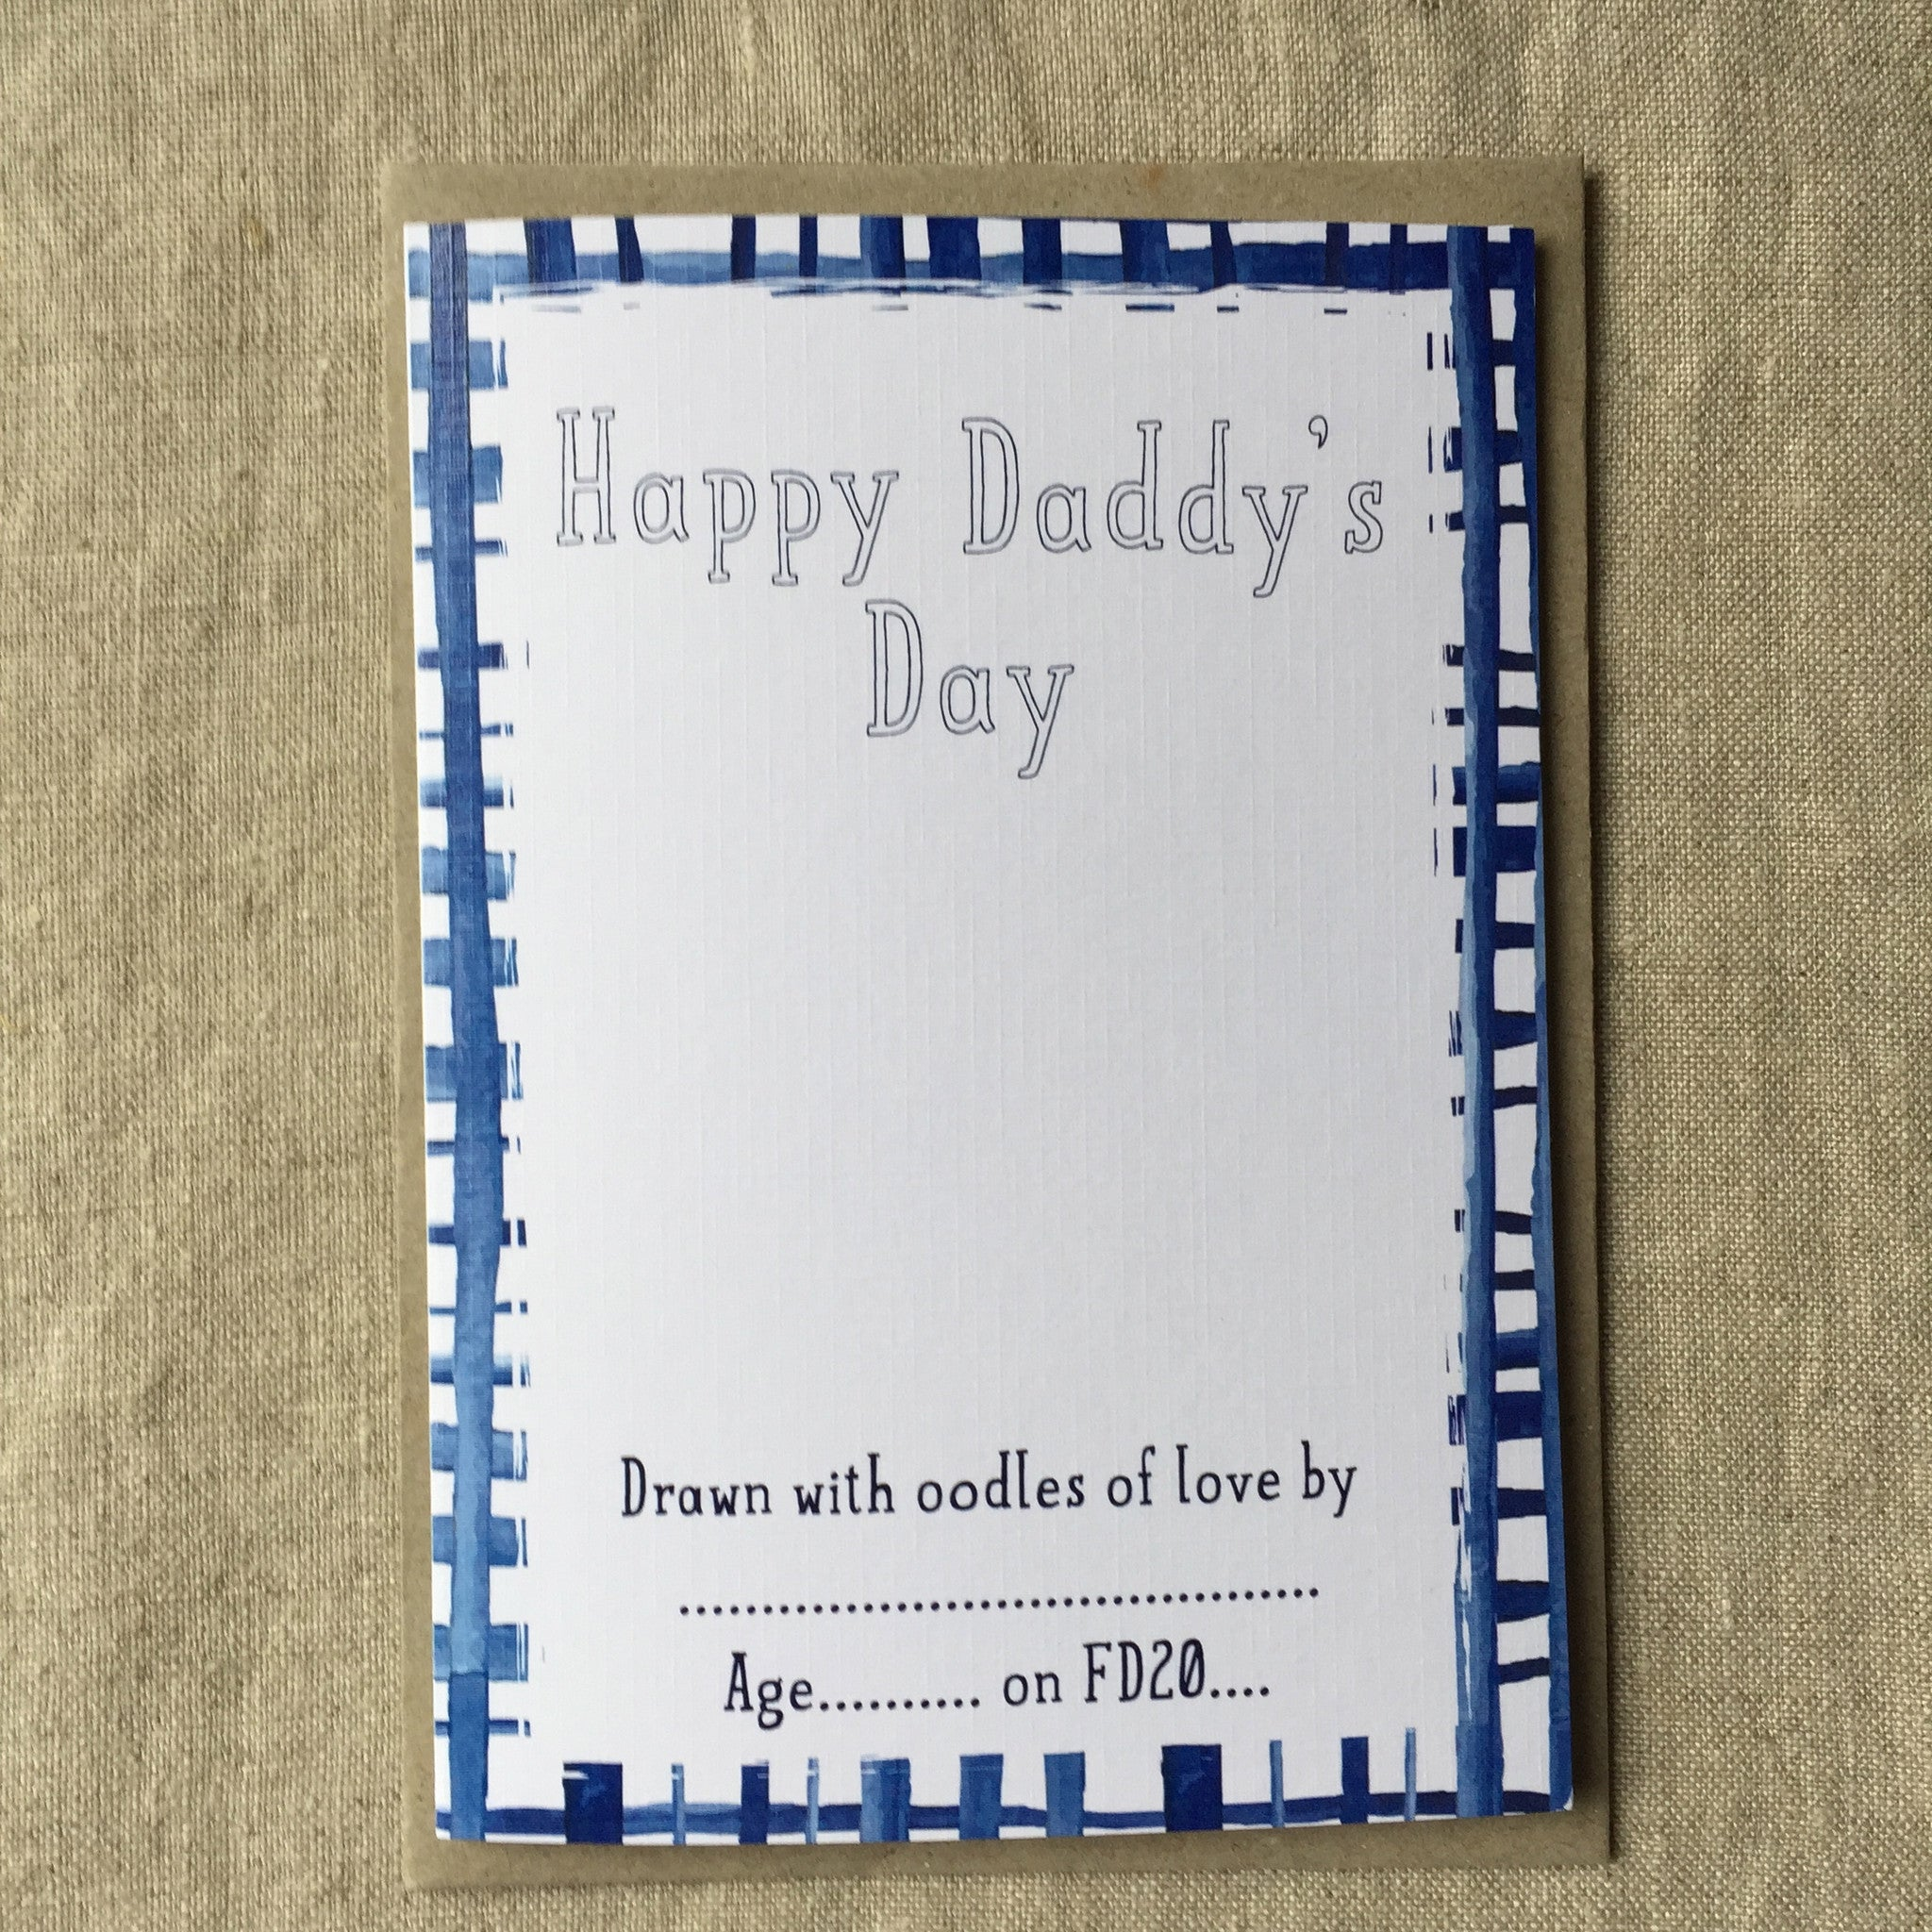 Let's Draw Happy Daddy's Day Card